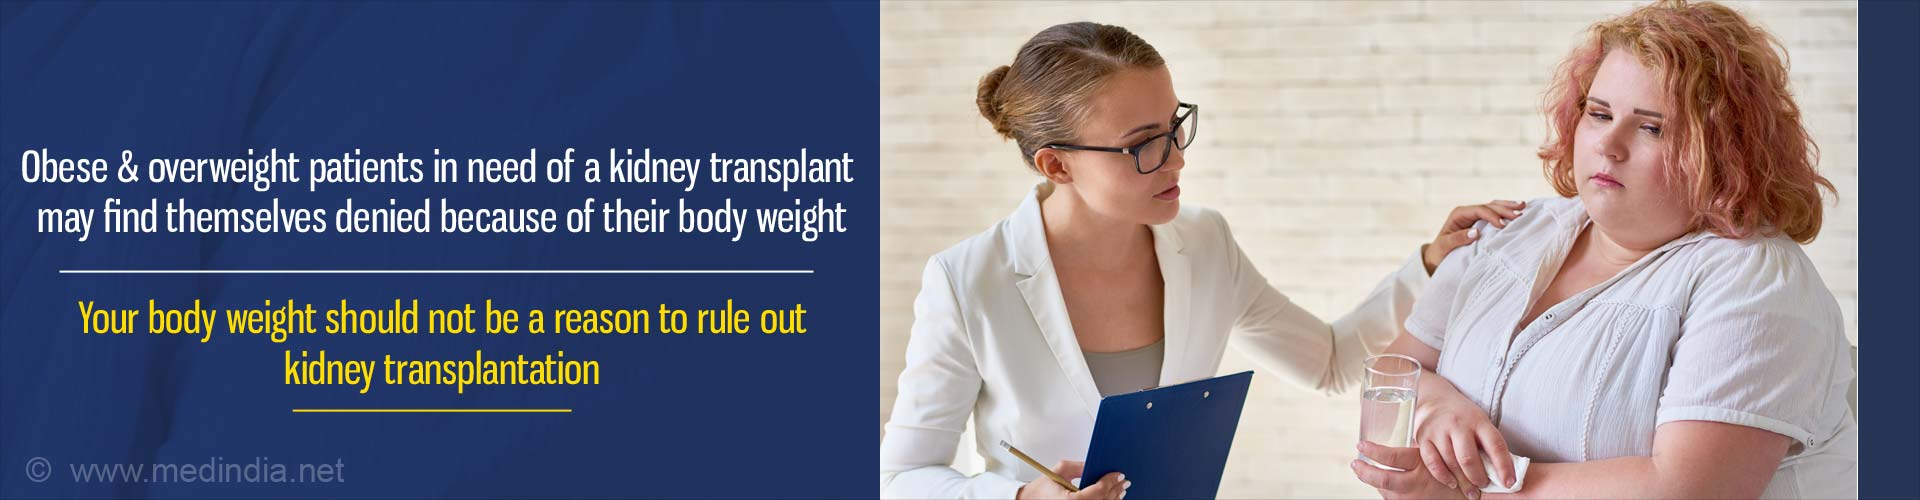 Can Obesity Impact Kidney Transplant Outcomes?